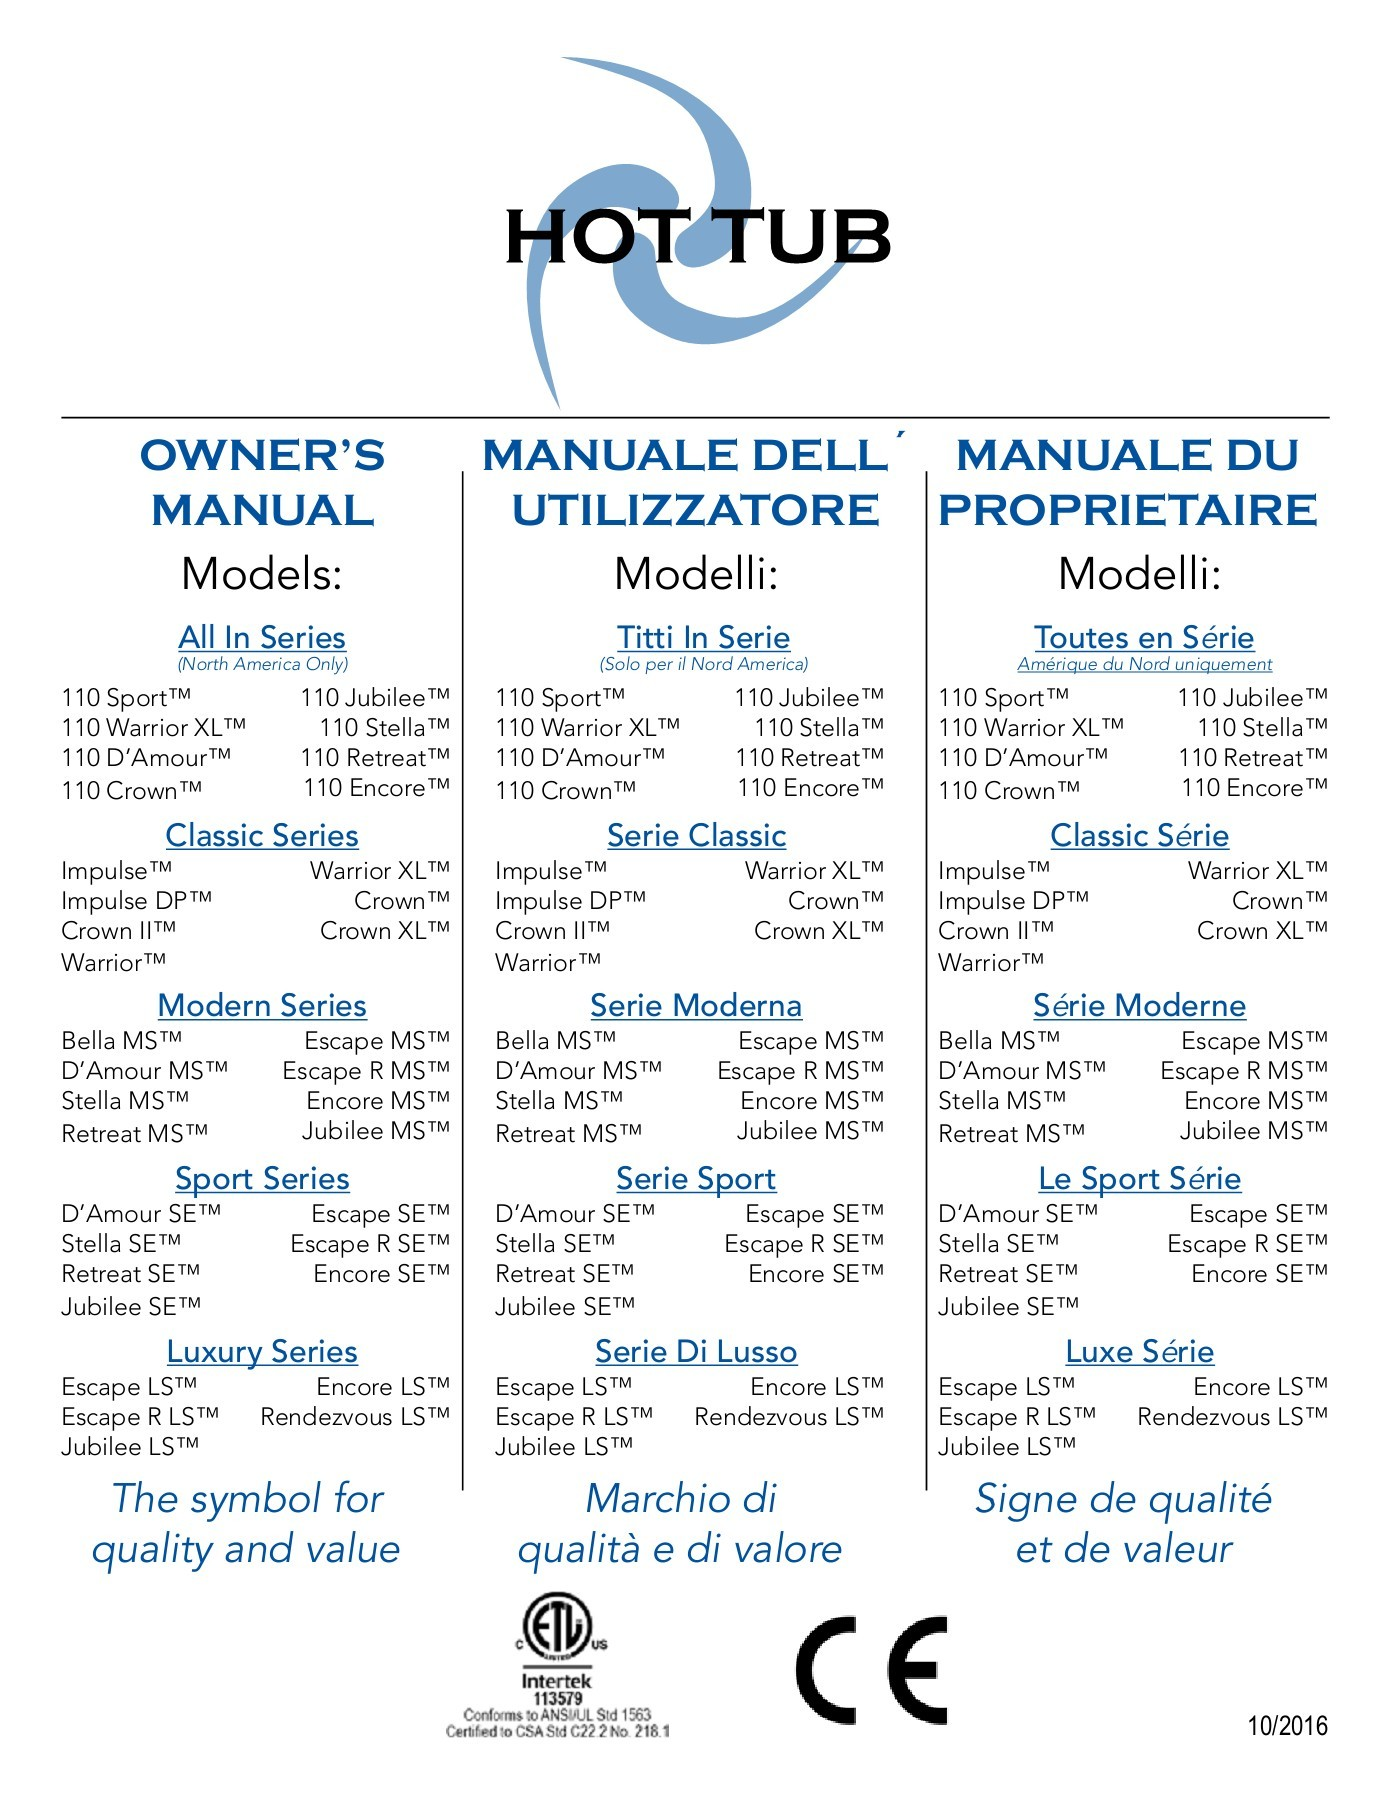 nordic spas hot tubs owner resources guides and manuals rh jacuzziontario com nordic hot tub installation manual